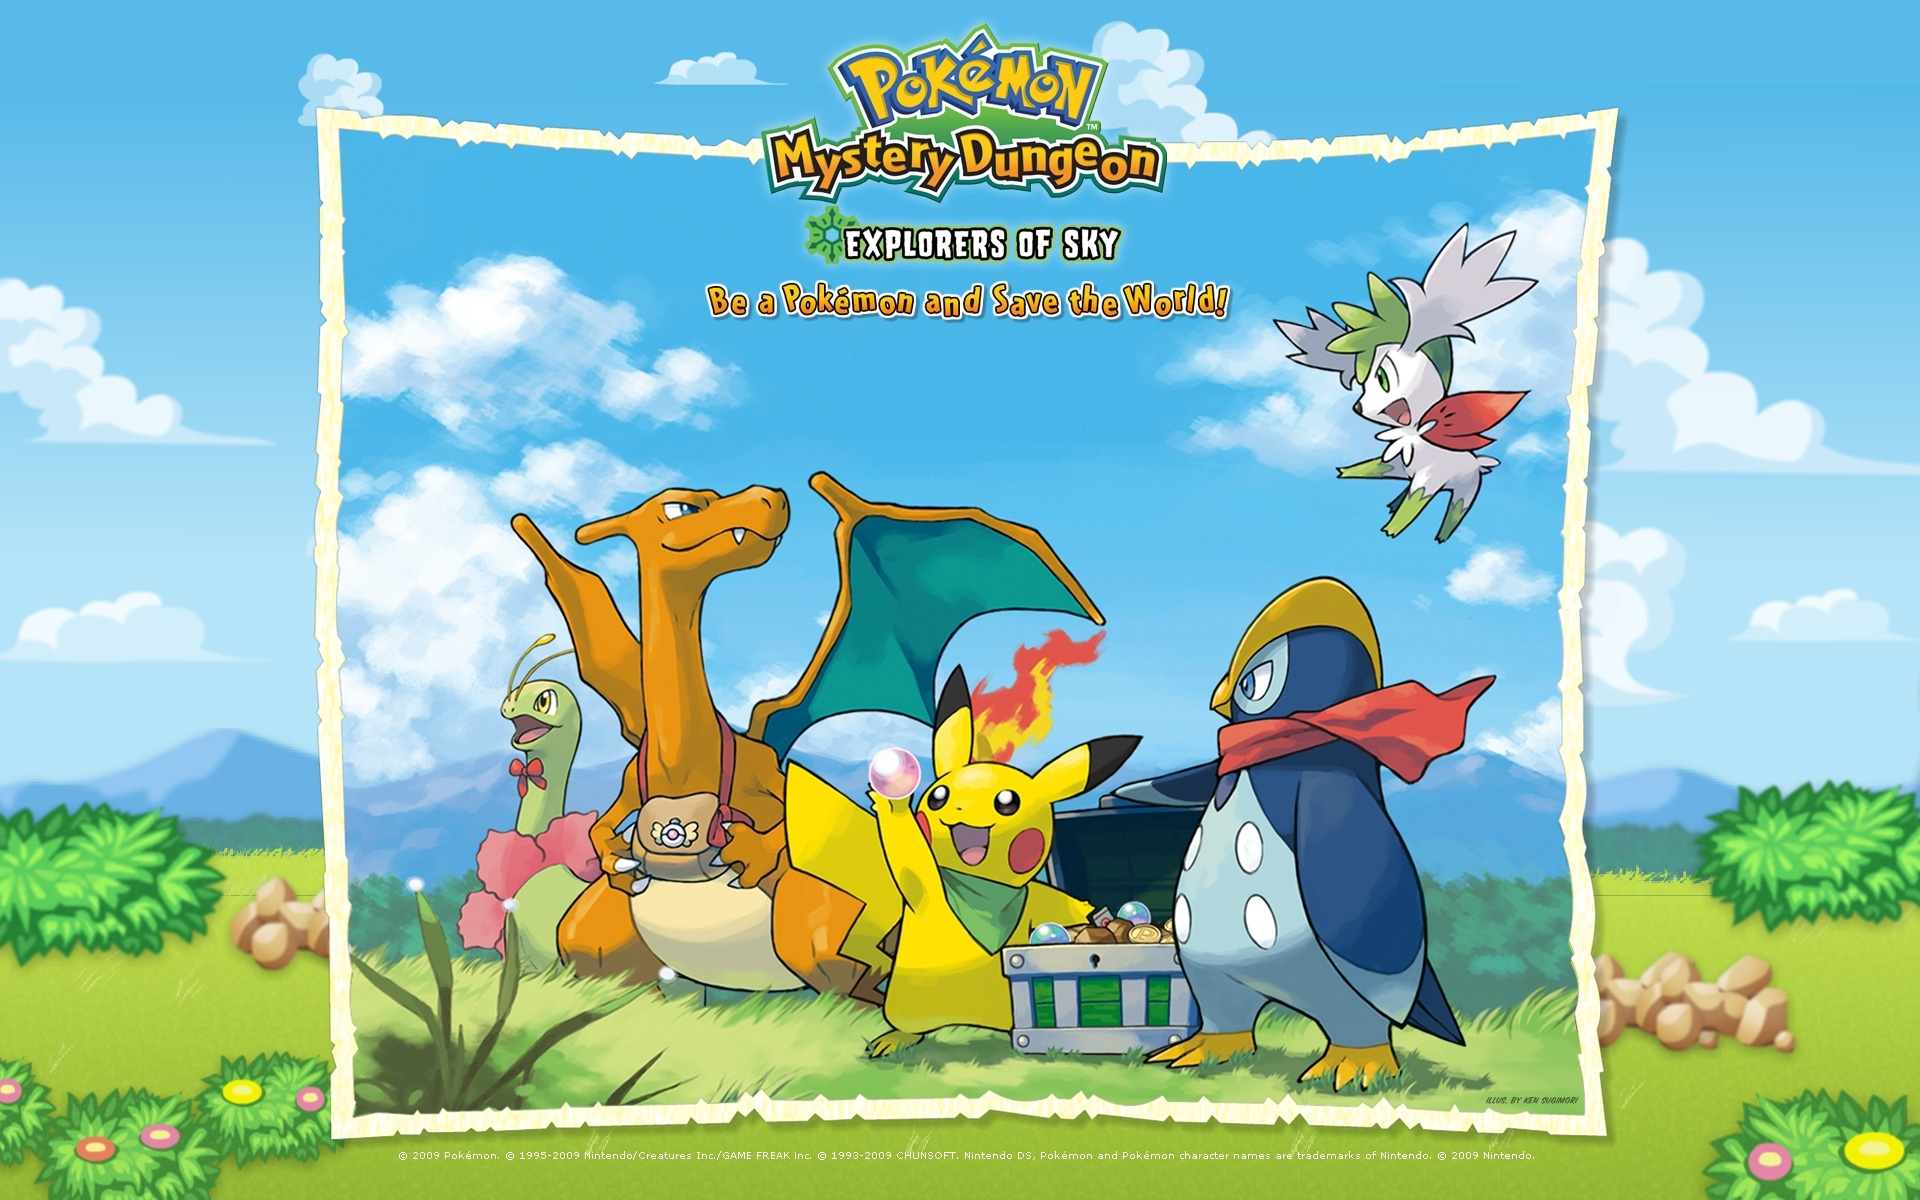 pokémon mystery dungeon: explorers of sky details - launchbox games